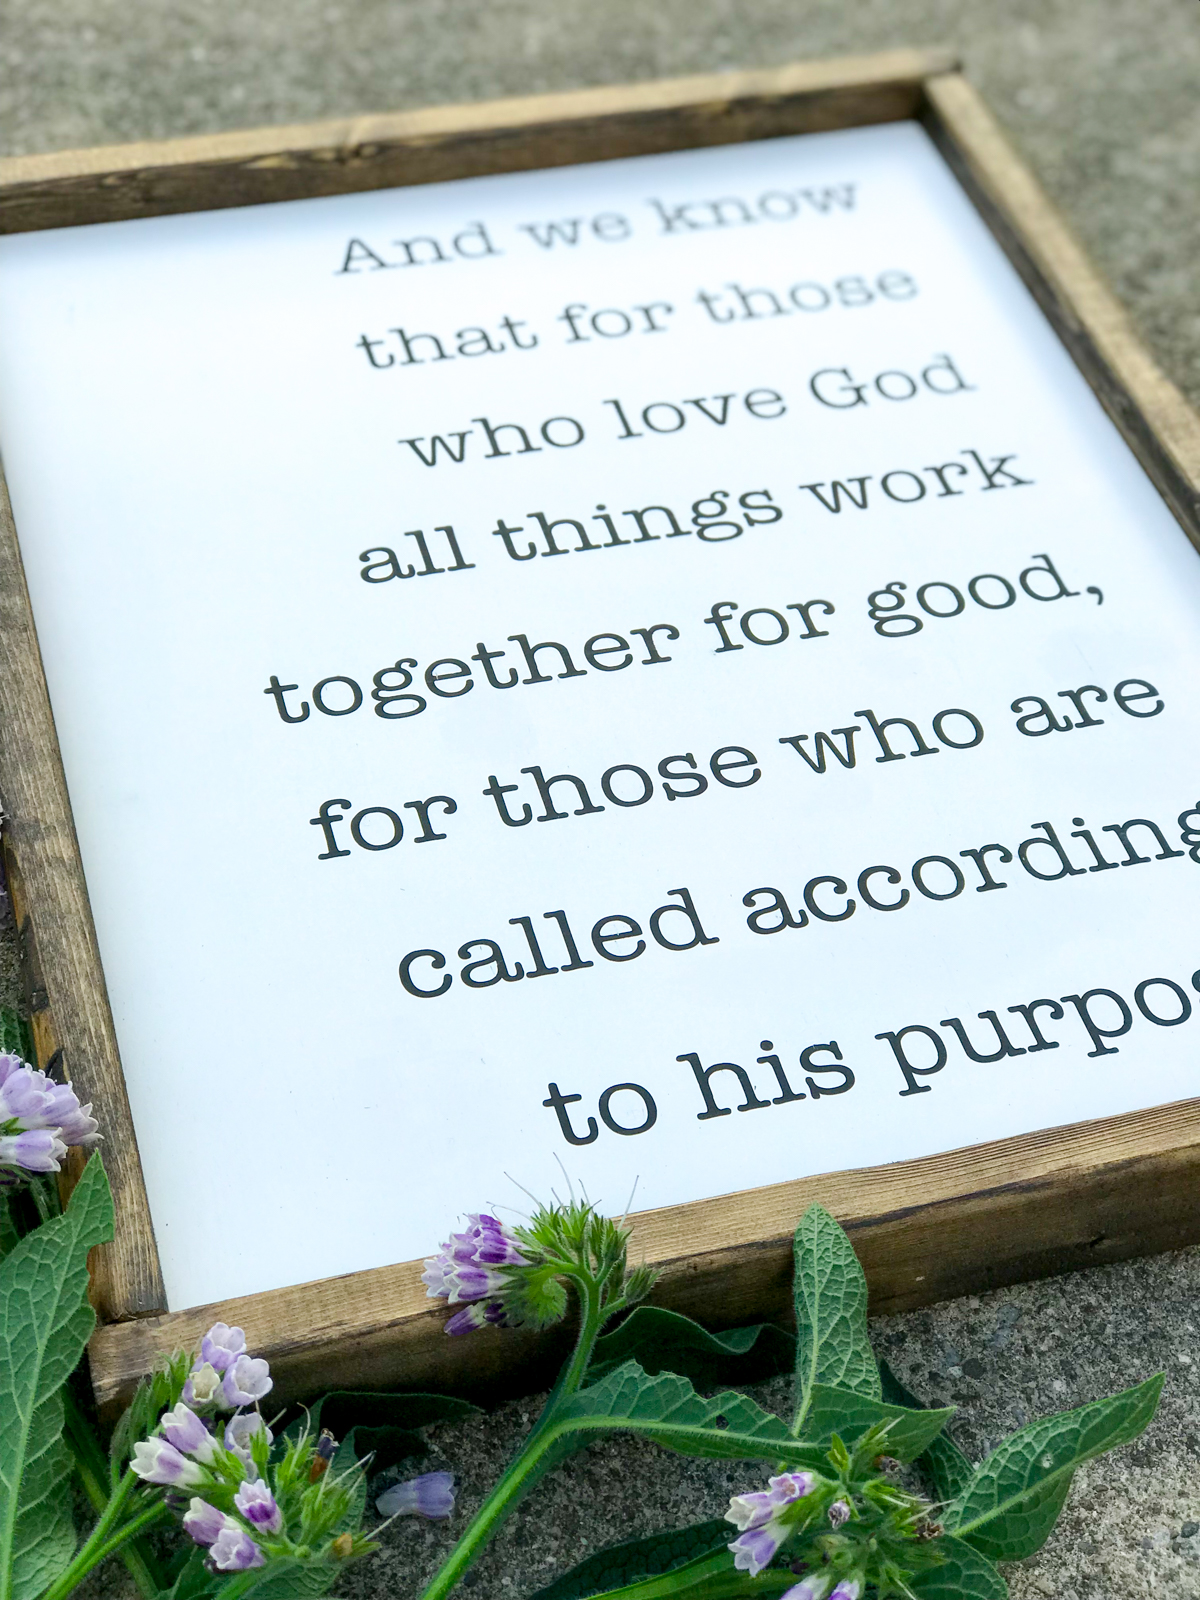 All Things Work Together For Good Wood Sign and Comfrey